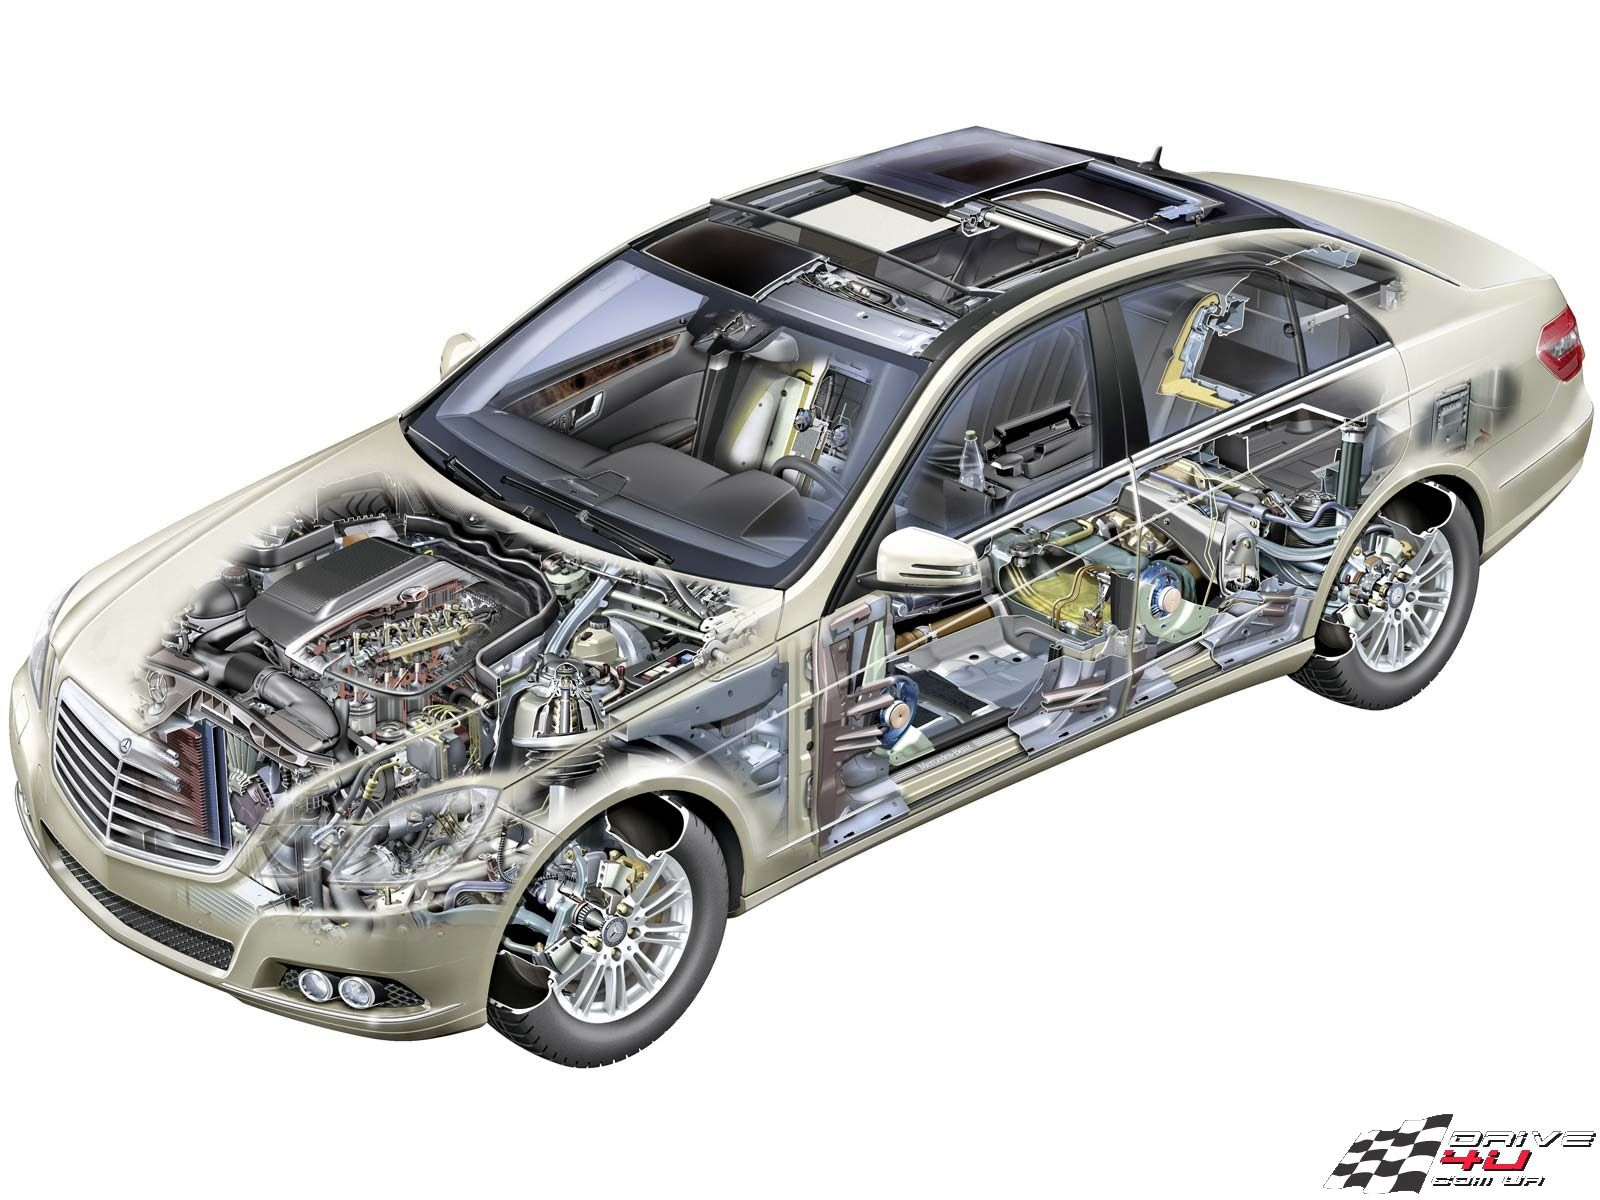 Structure of MercedesBenz W212